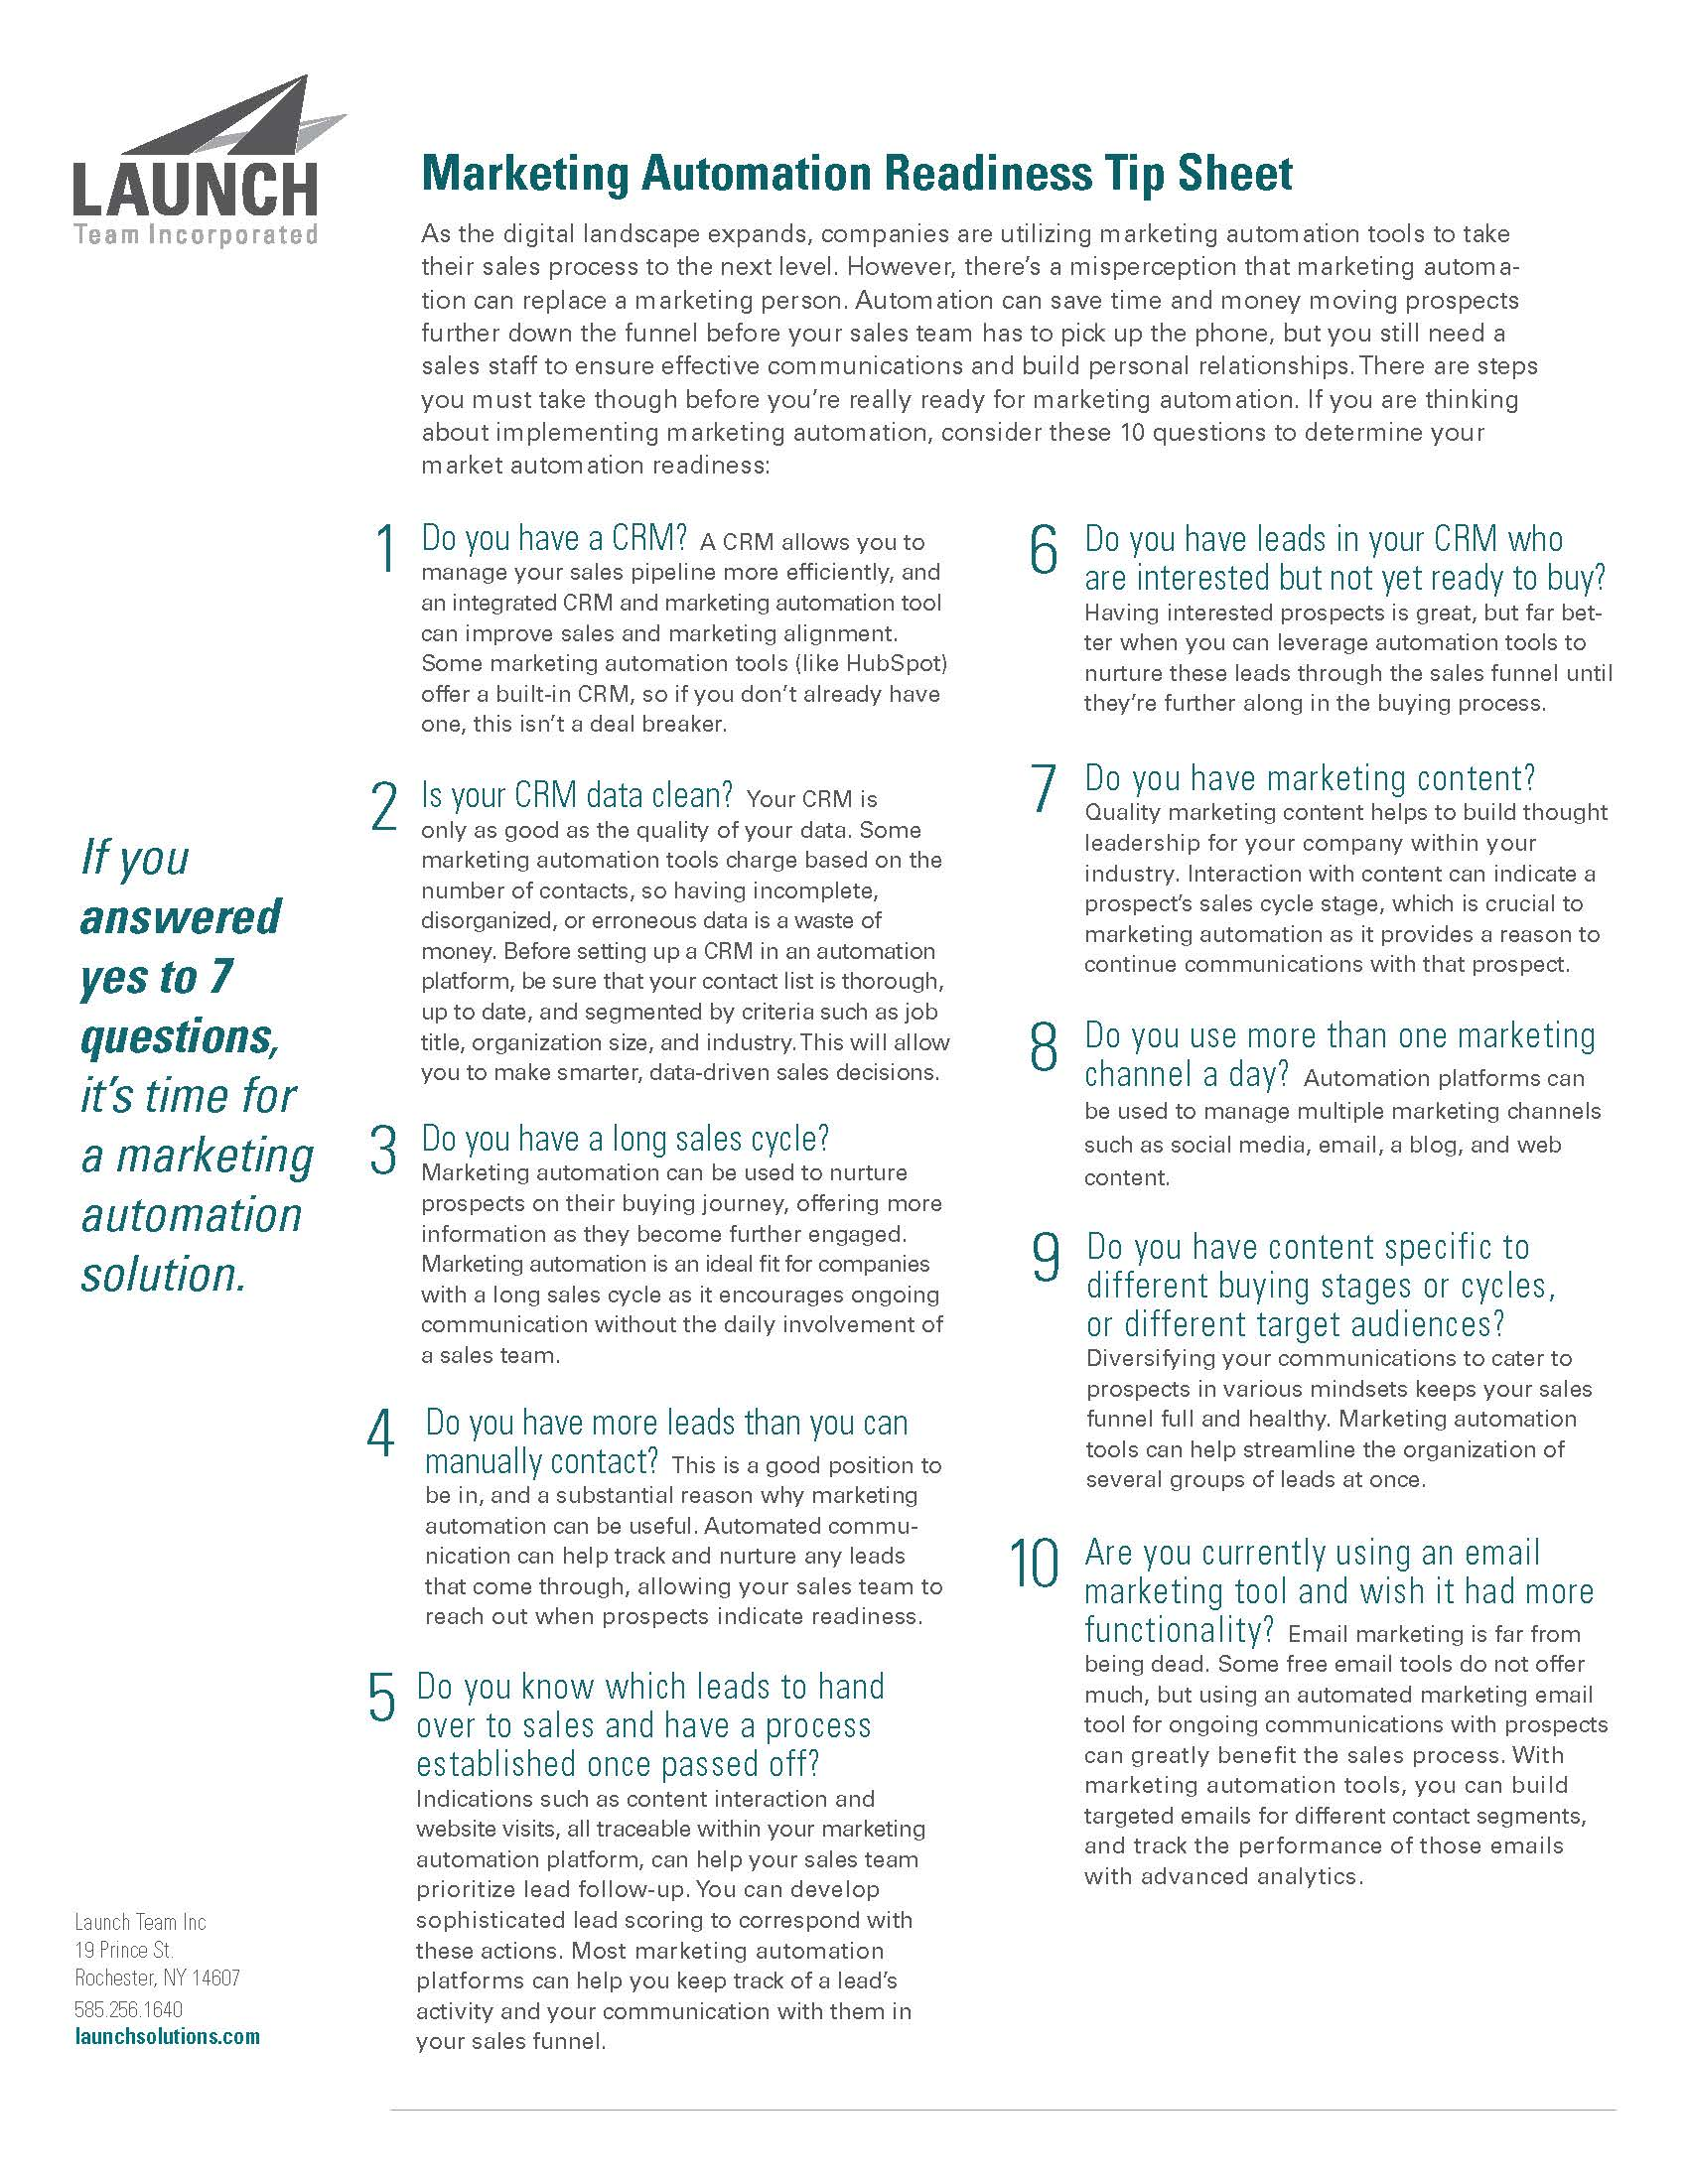 Marketing Automation Readiness Tip Sheet.jpg